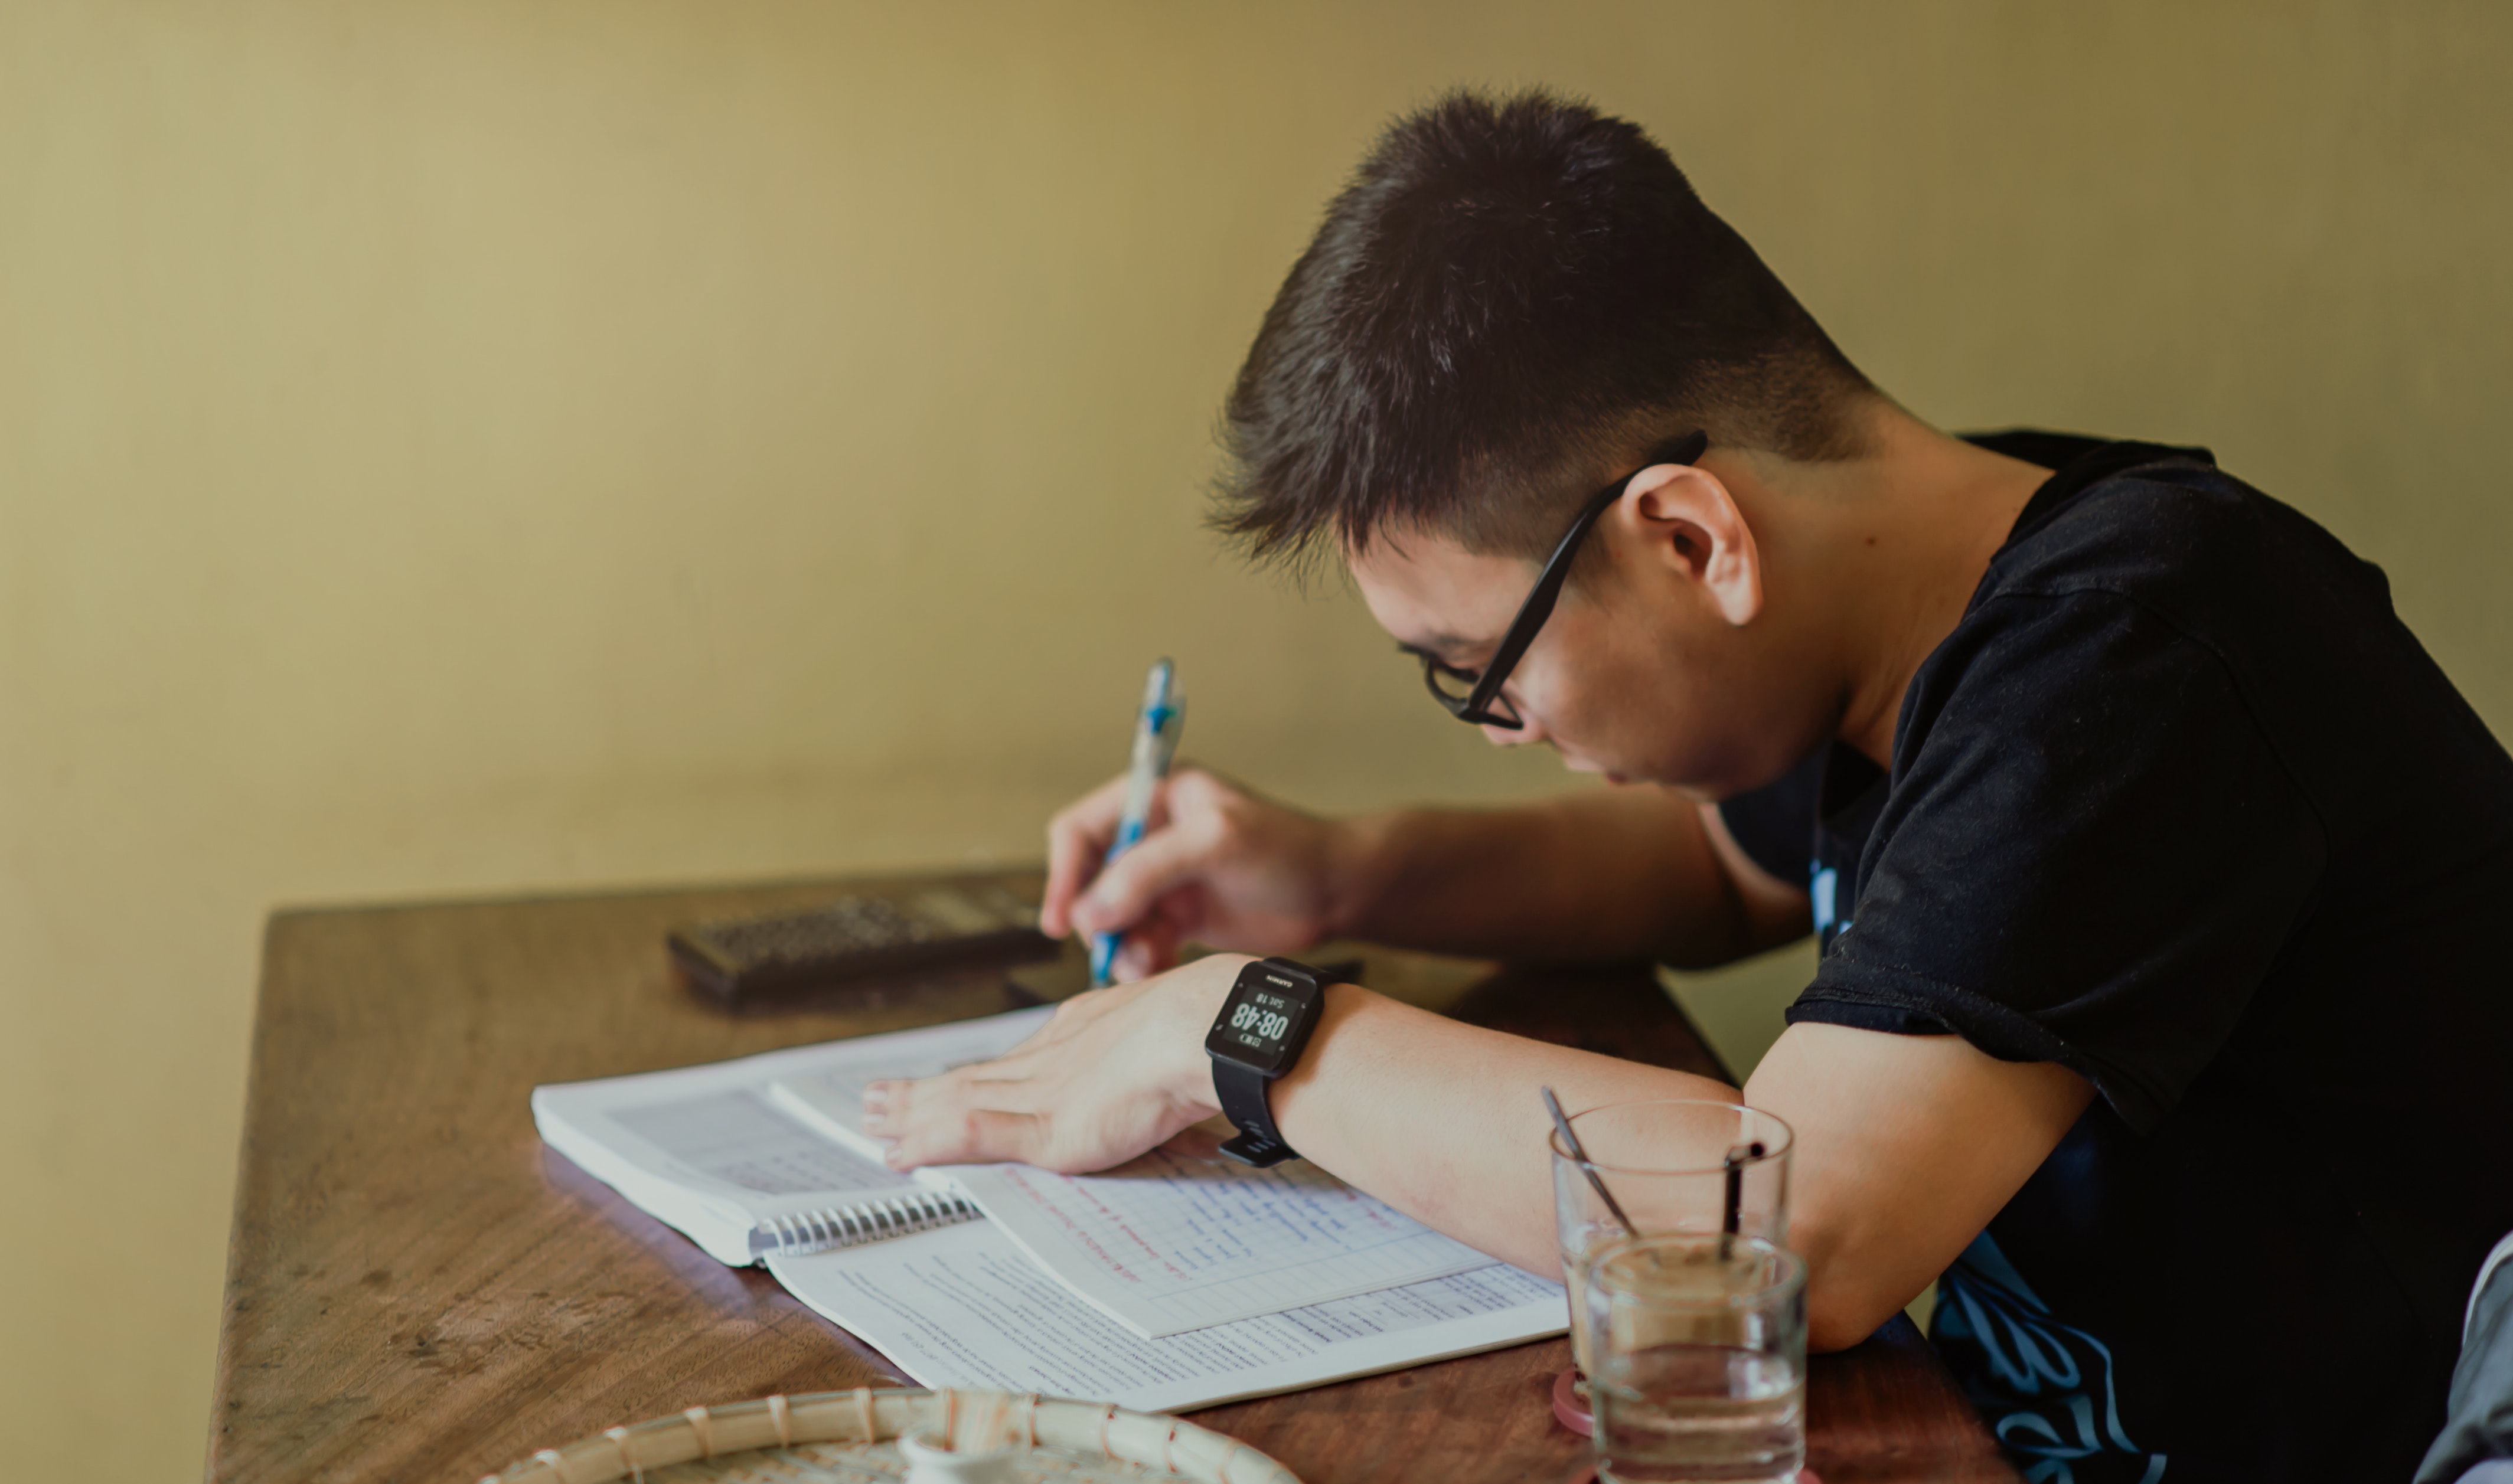 Man in black shirt sitting and writing photo